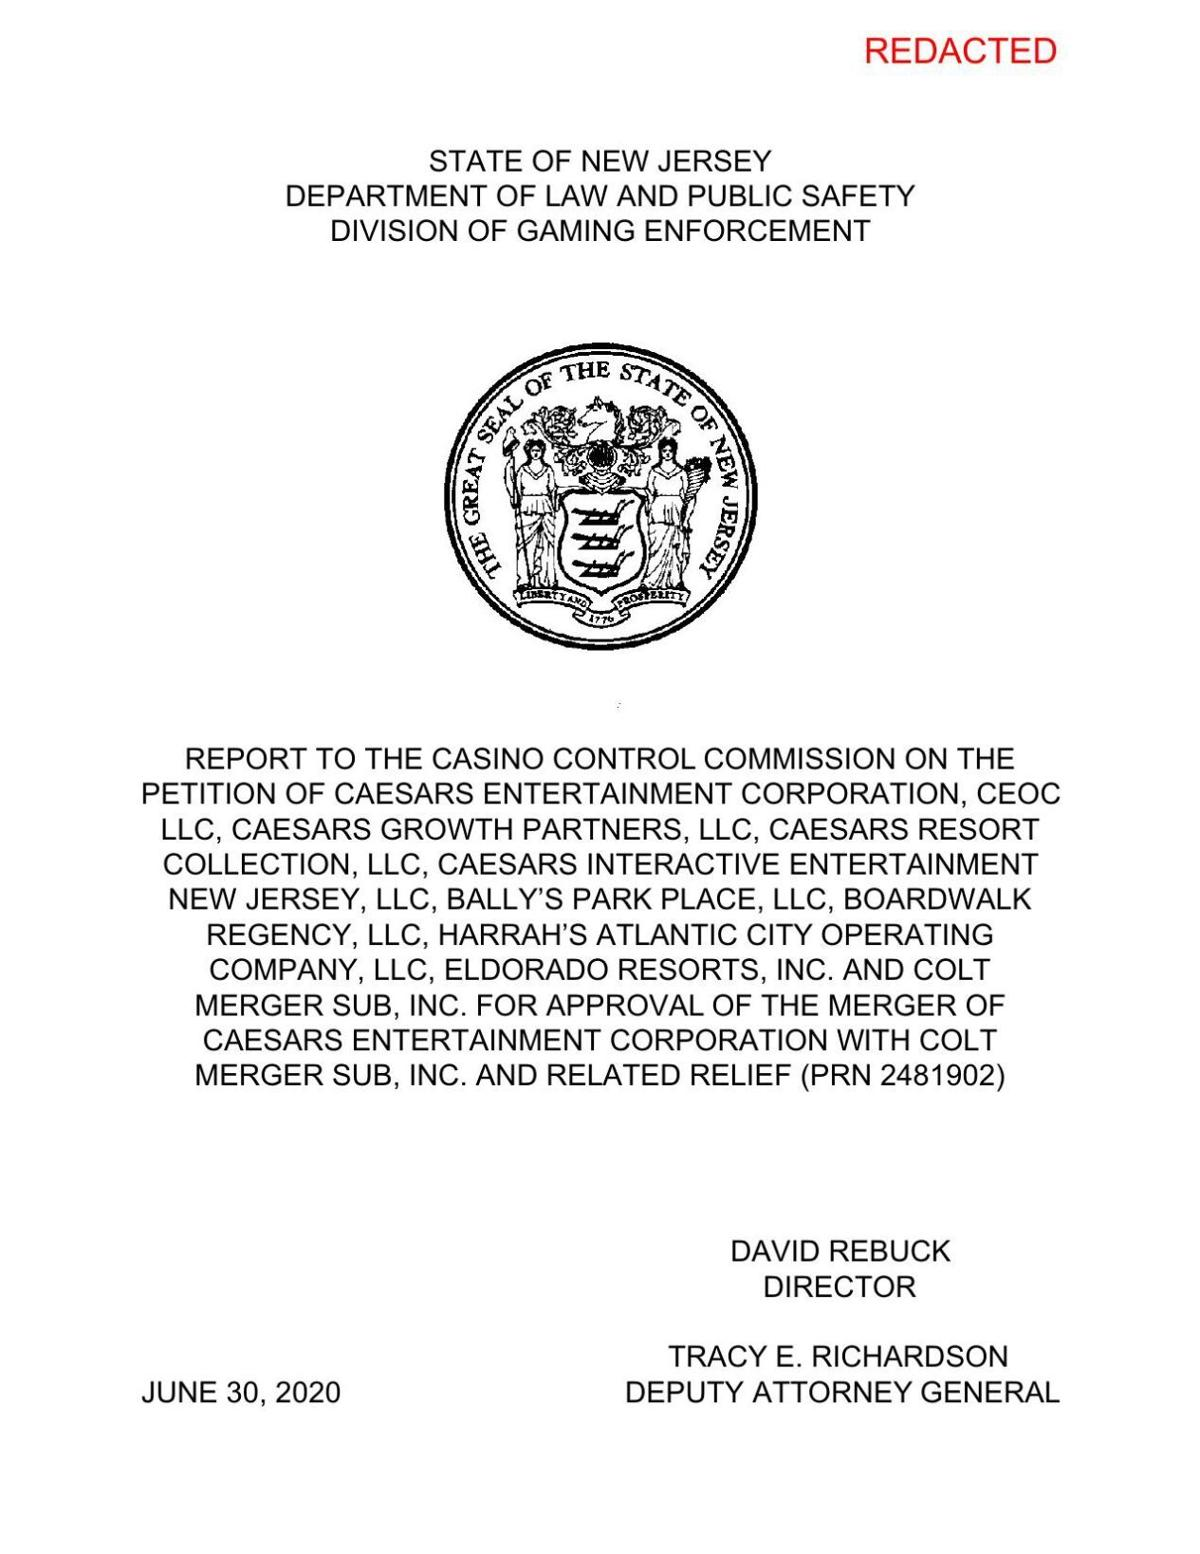 State of new jersey casino control commission forms who owns meadows casino